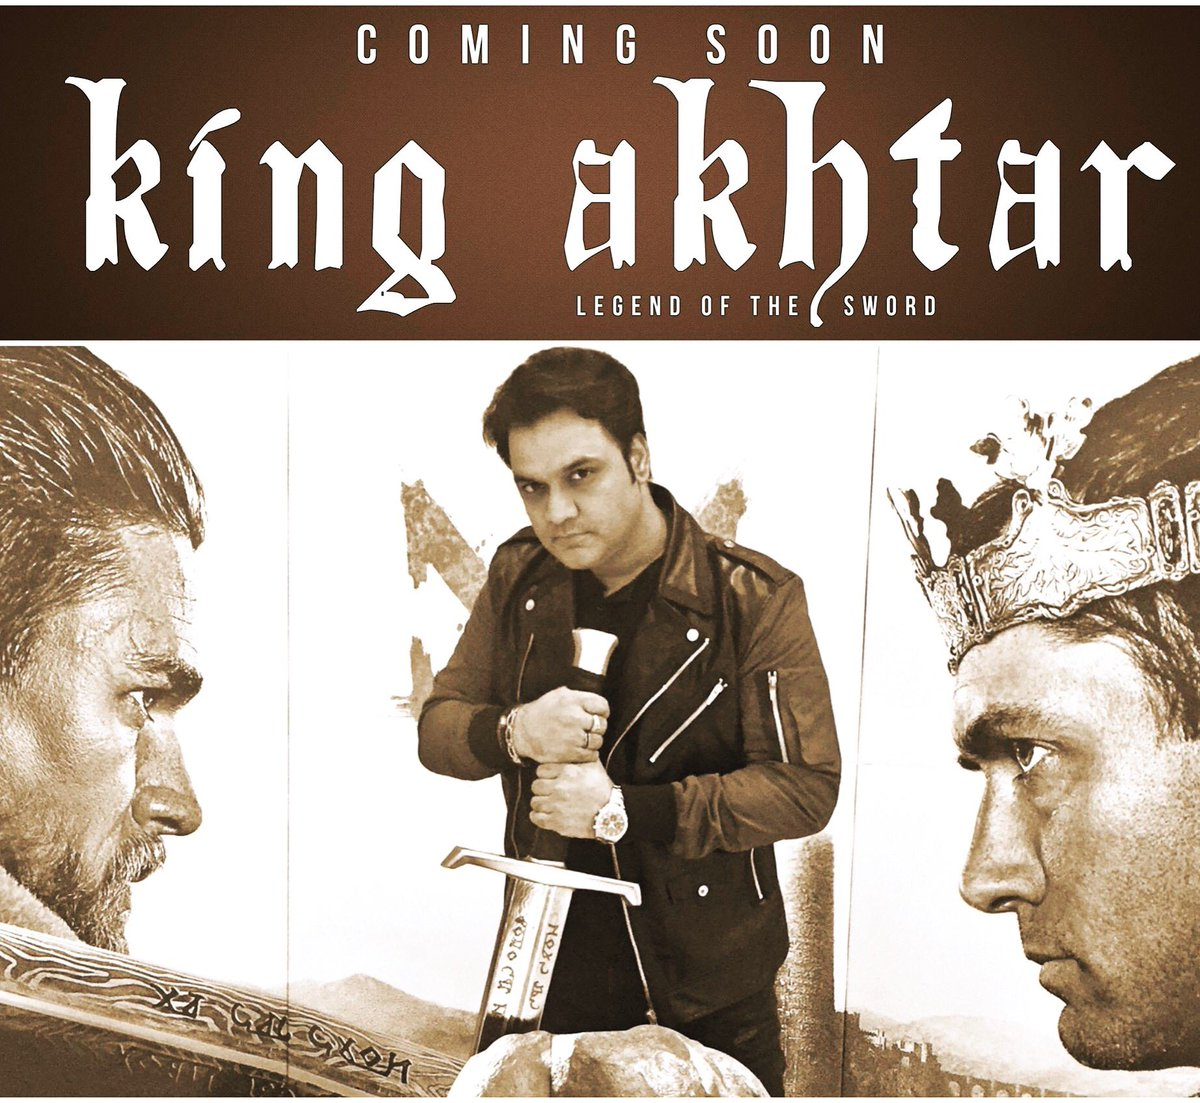 My crown and the kingdom is in my heart! #KingAkhtar #YasirAkhtar #LegendoftheSword #ComingSoon #KingArthur #BBCMusic #BBCAsianNetwork #BBC <br>http://pic.twitter.com/5V9KFaC04I